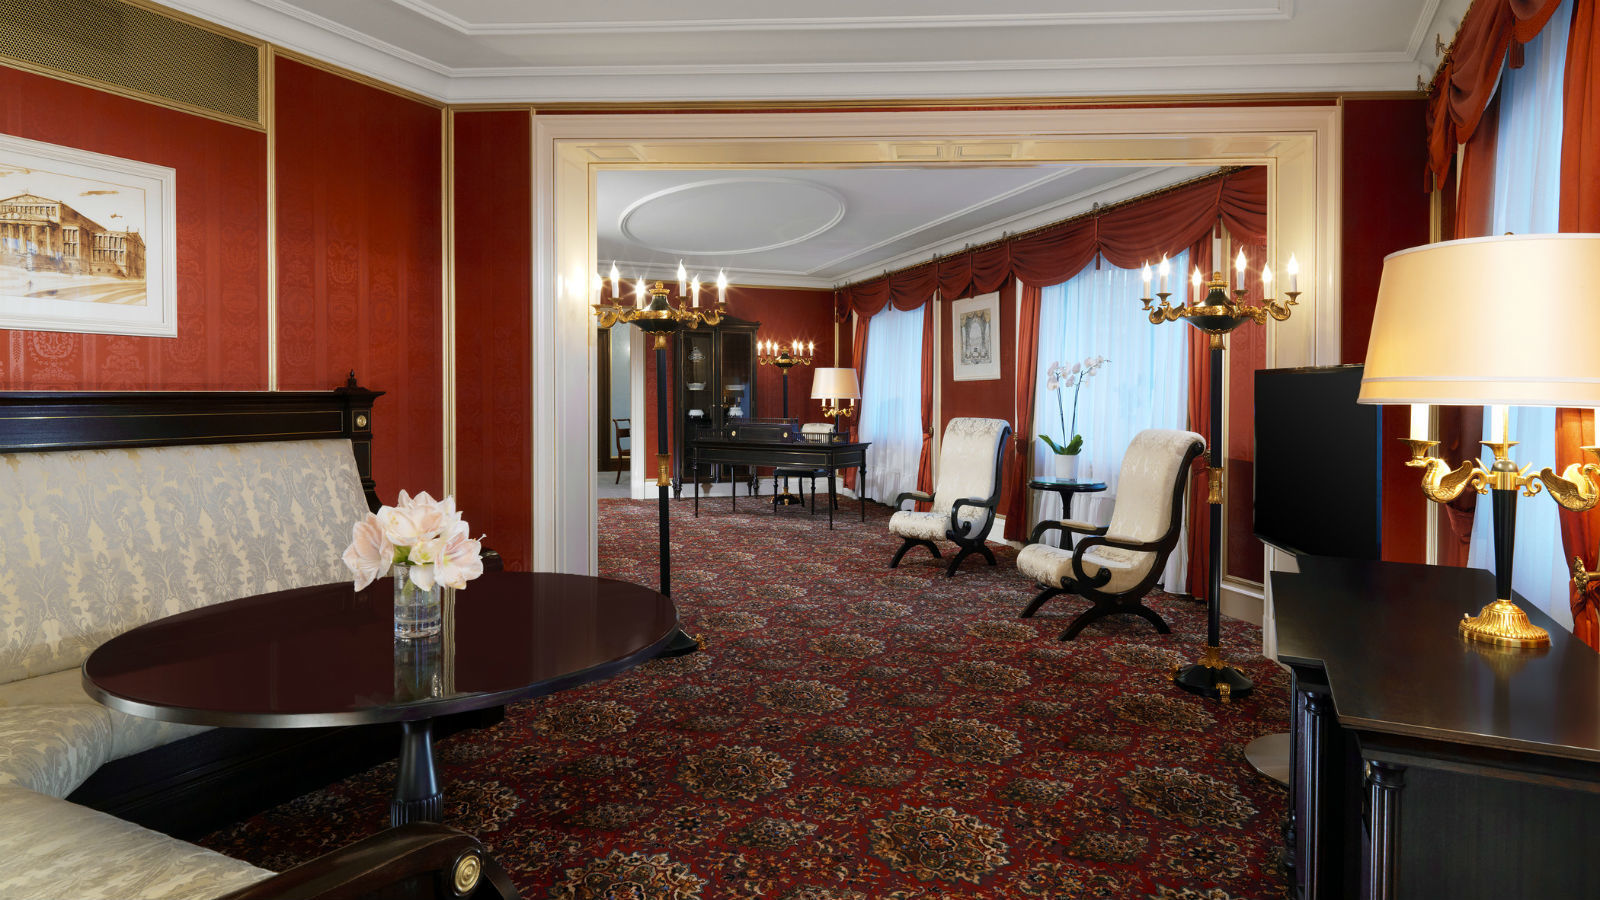 Presidential suite at The Westin hotel in Berlin